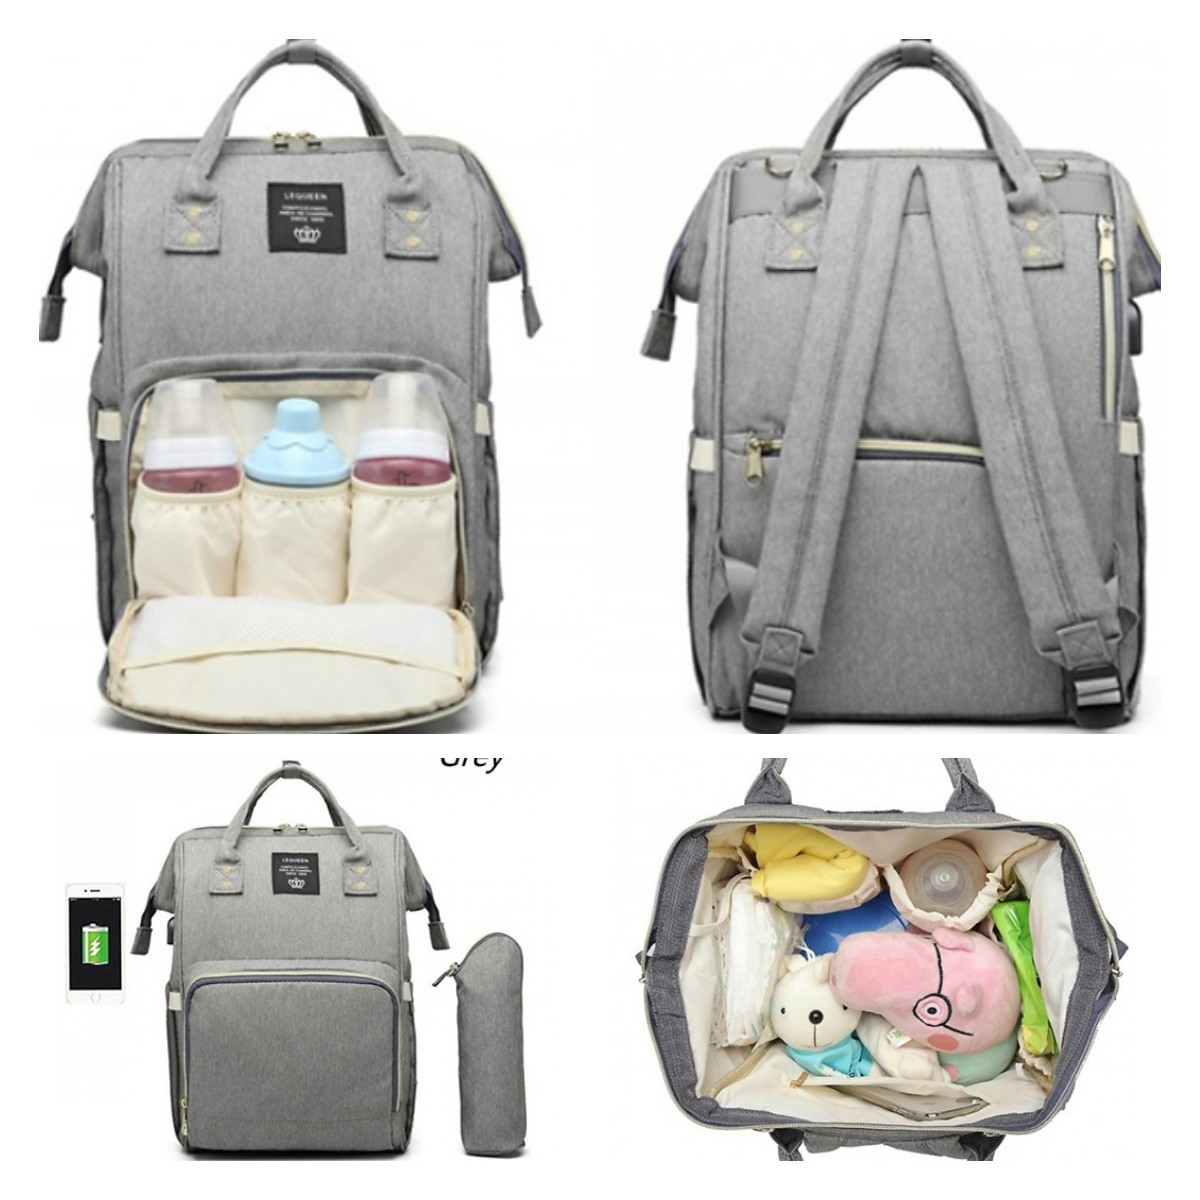 72% OFF Baby Changing Backpack With Built-in USB Charger – 5 Colours